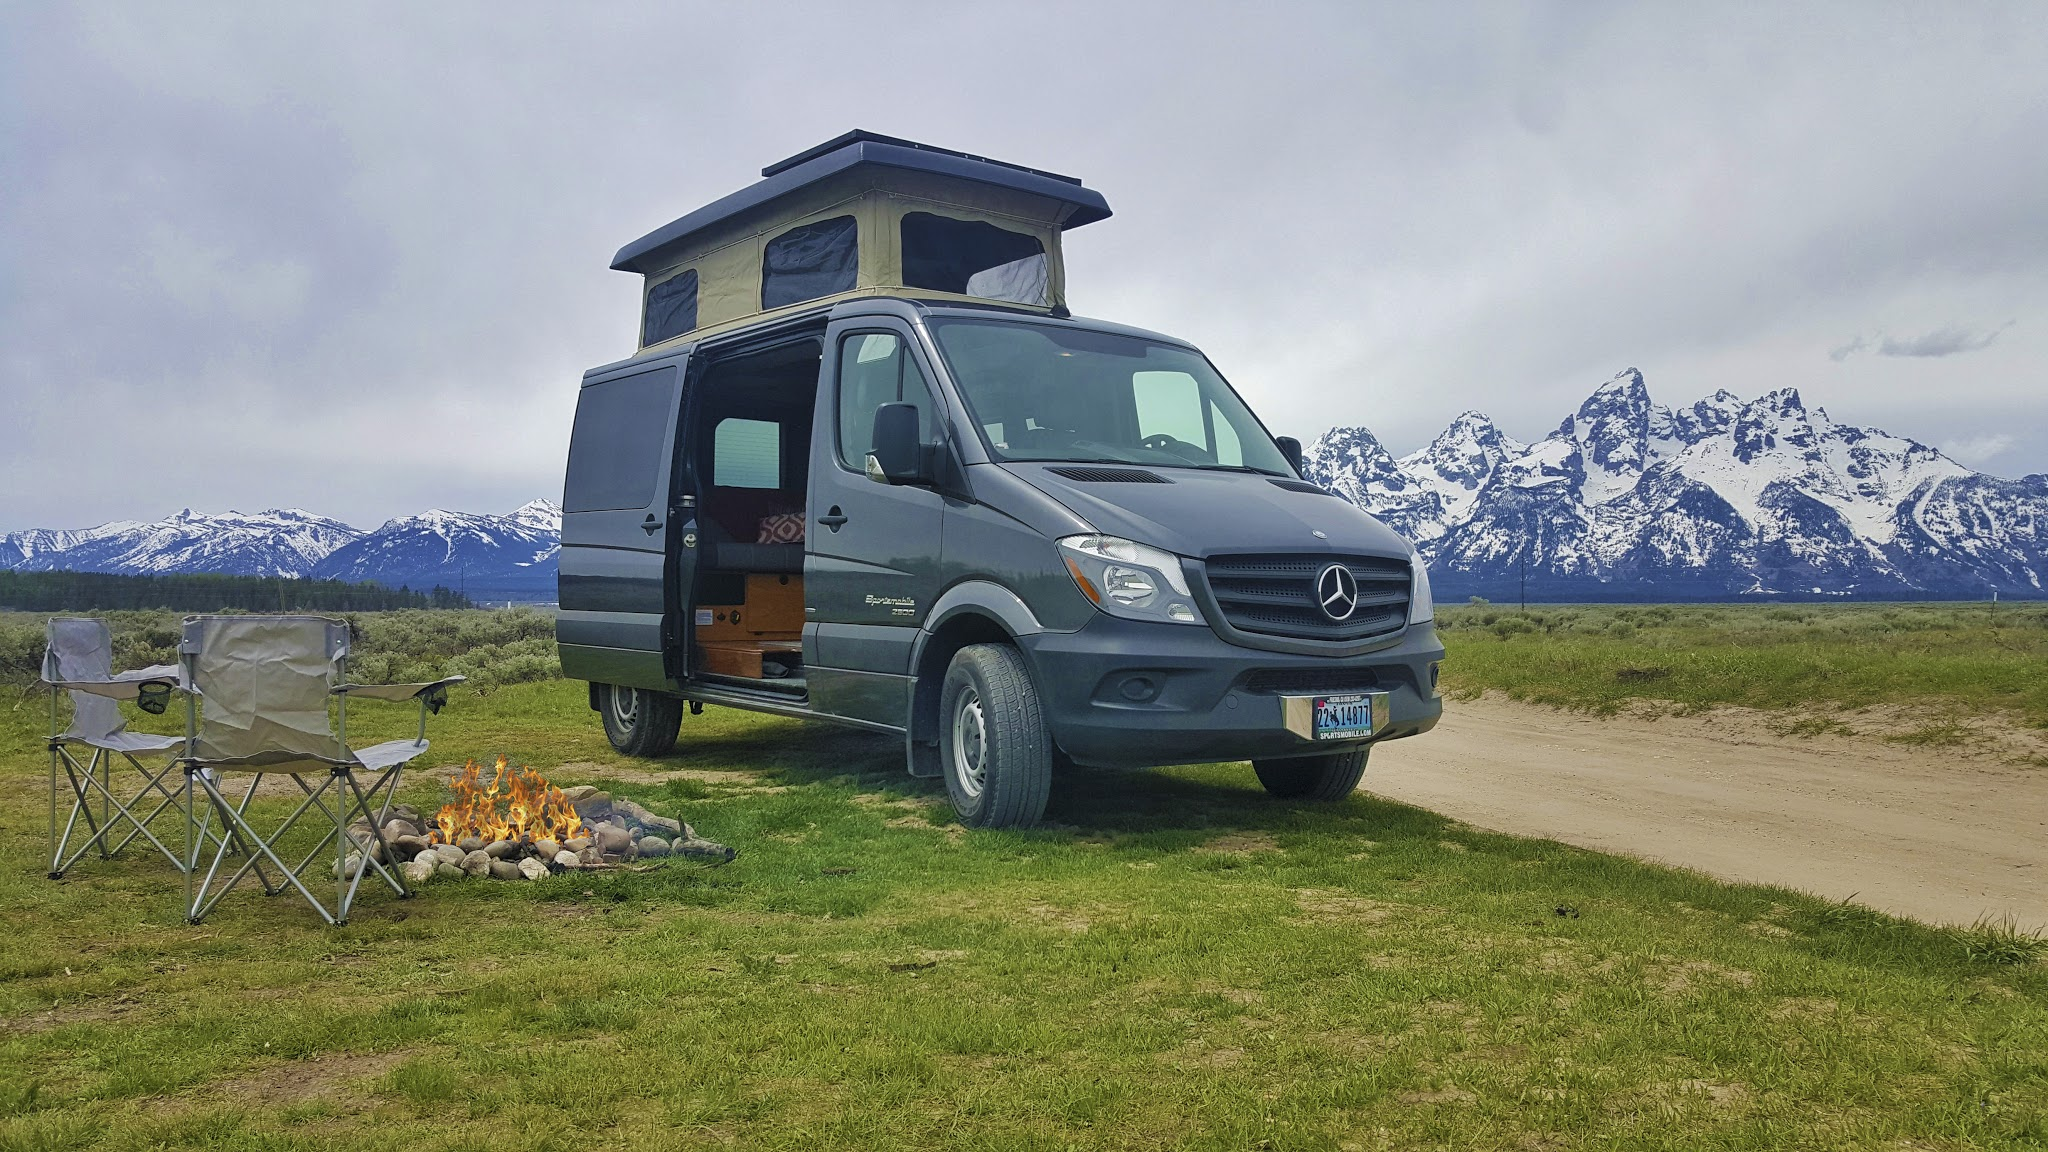 Try out van life in these sporty four-wheel drive campers